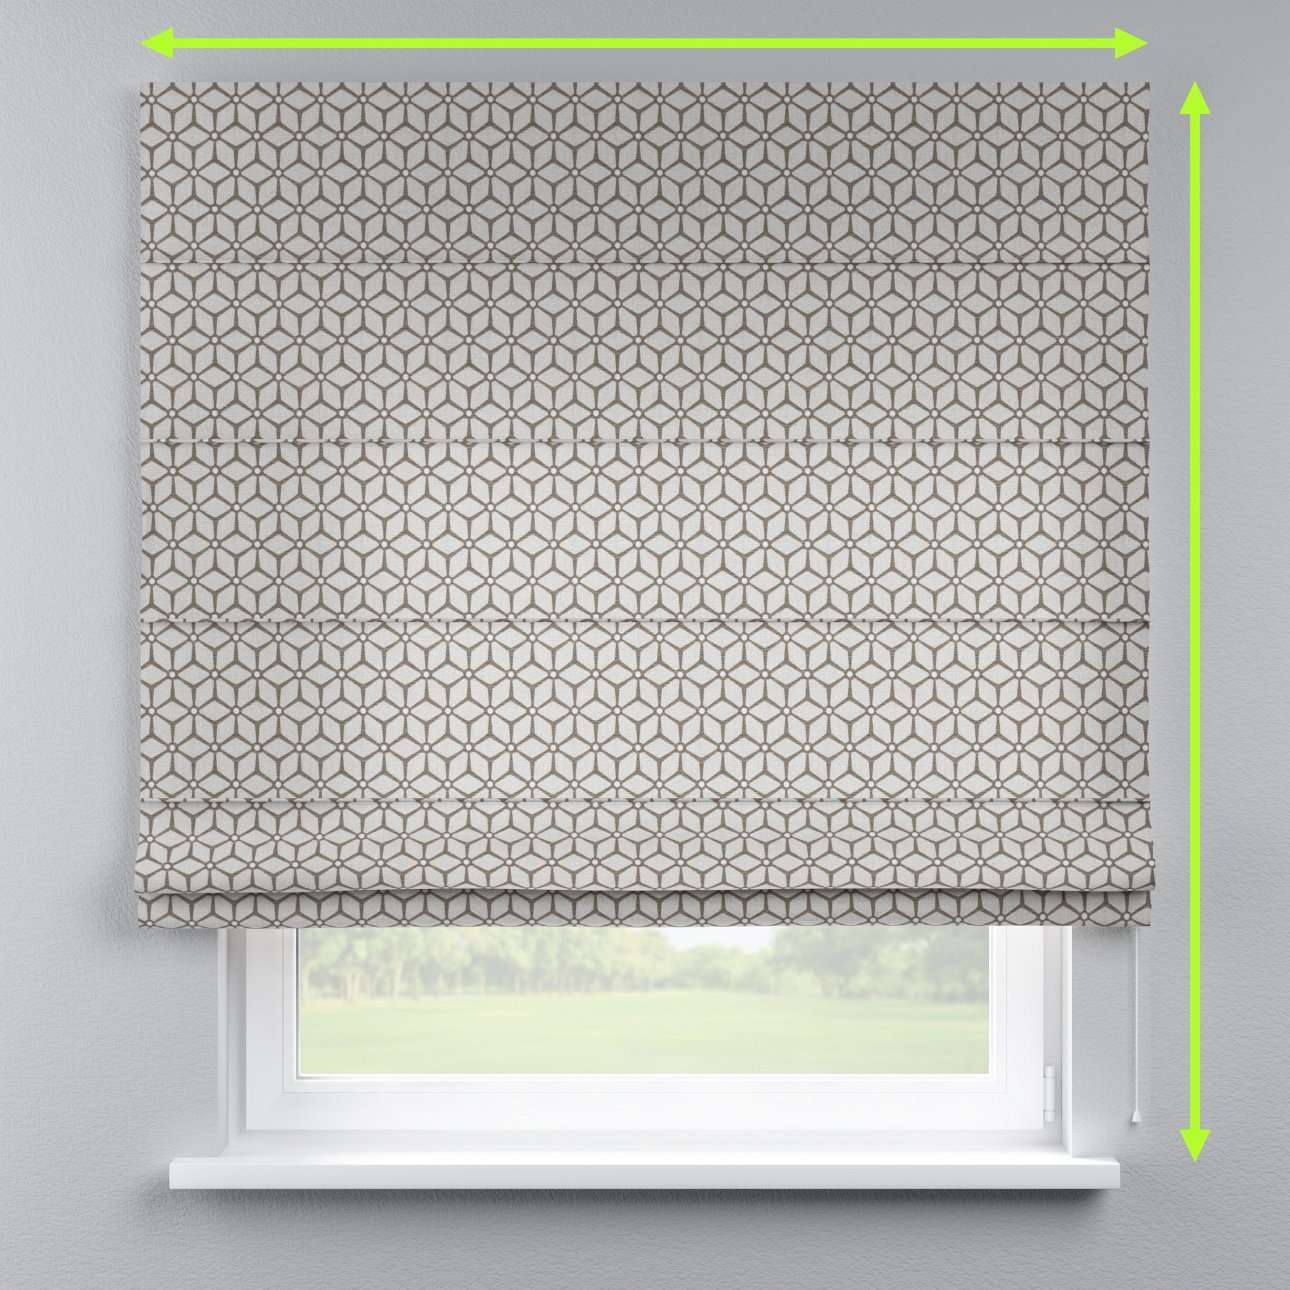 Capri roman blind in collection Rustica, fabric: 138-21